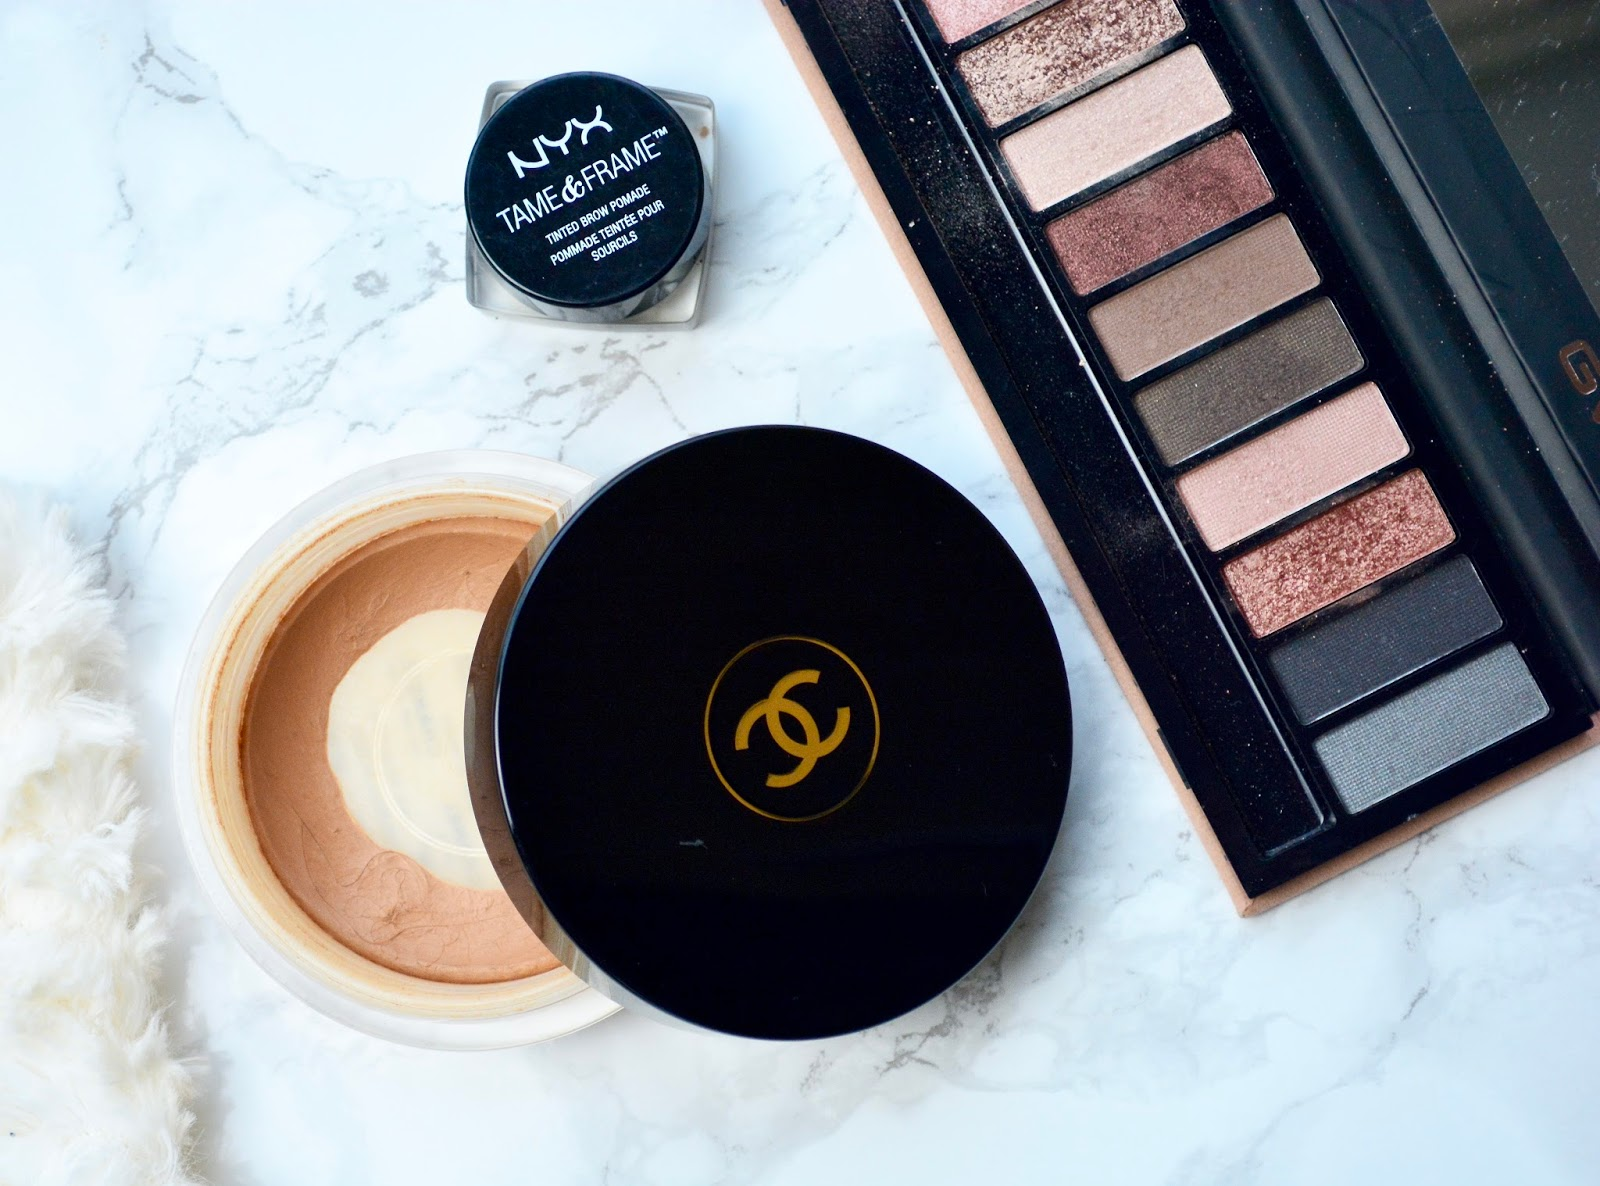 Chanel Soleil Tan De Chanel Bronze Universal